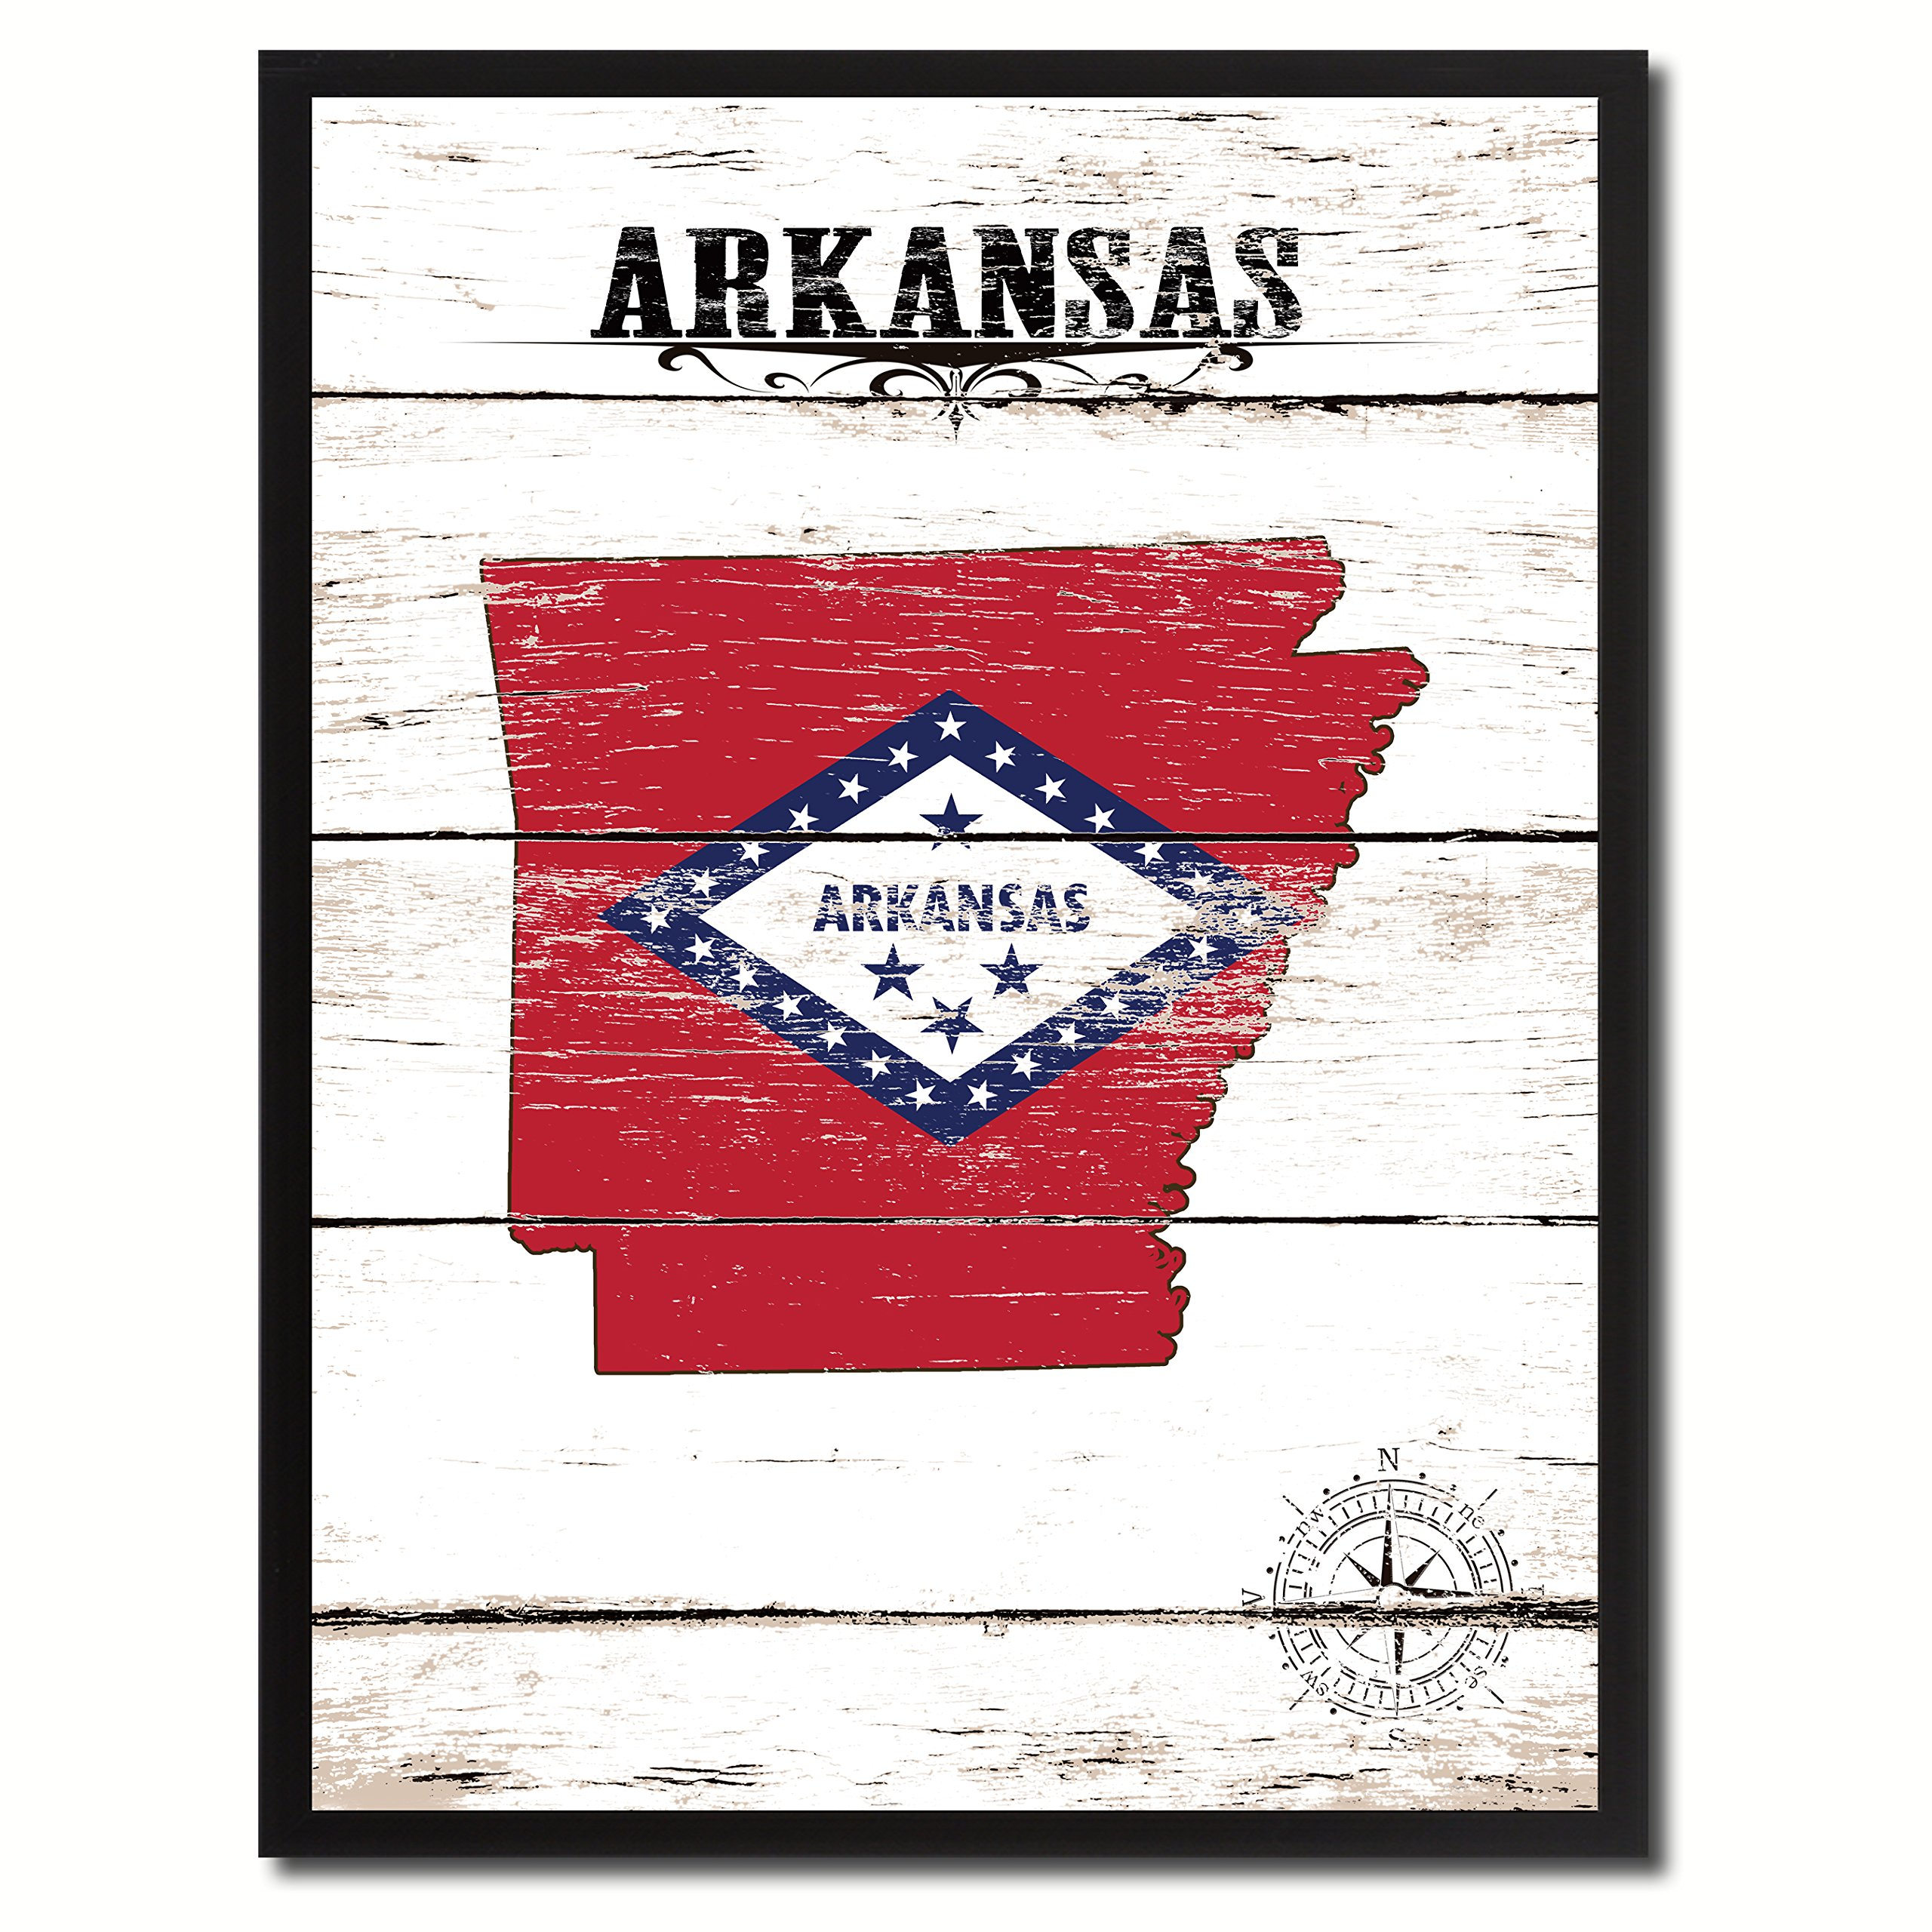 Arkansas State Flag Canvas Print, Black Picture Frame Gifts Home Decor Wall Art Decoration